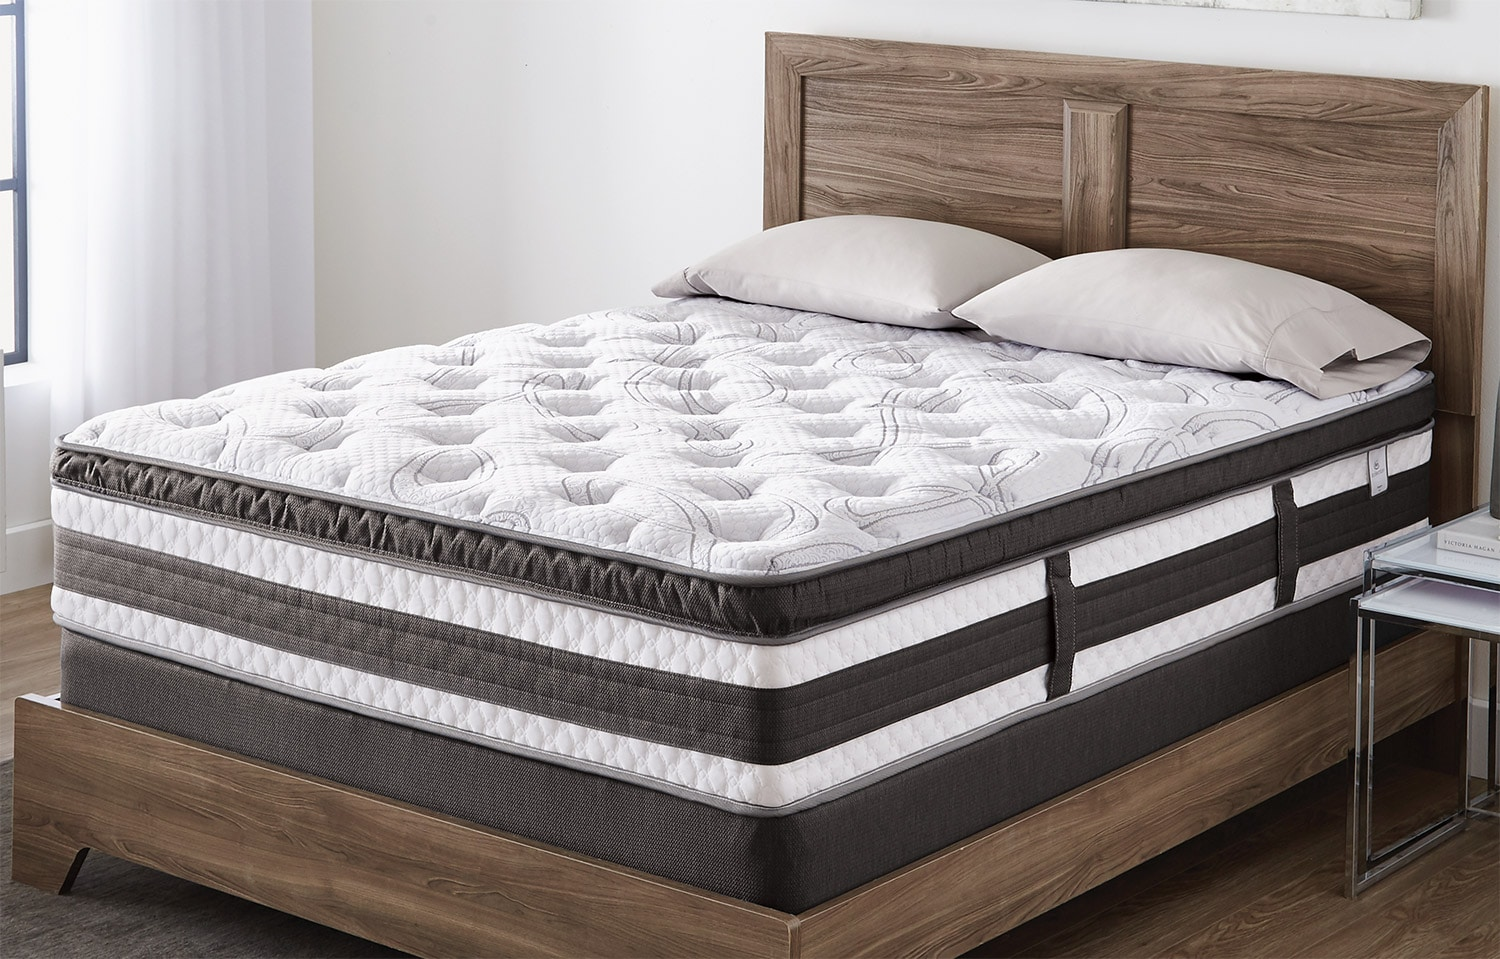 Mattresses and Bedding - Serta iCollection™ Kingsport Euro-Top Luxury Firm Low-Profile Split Queen Mattress Set